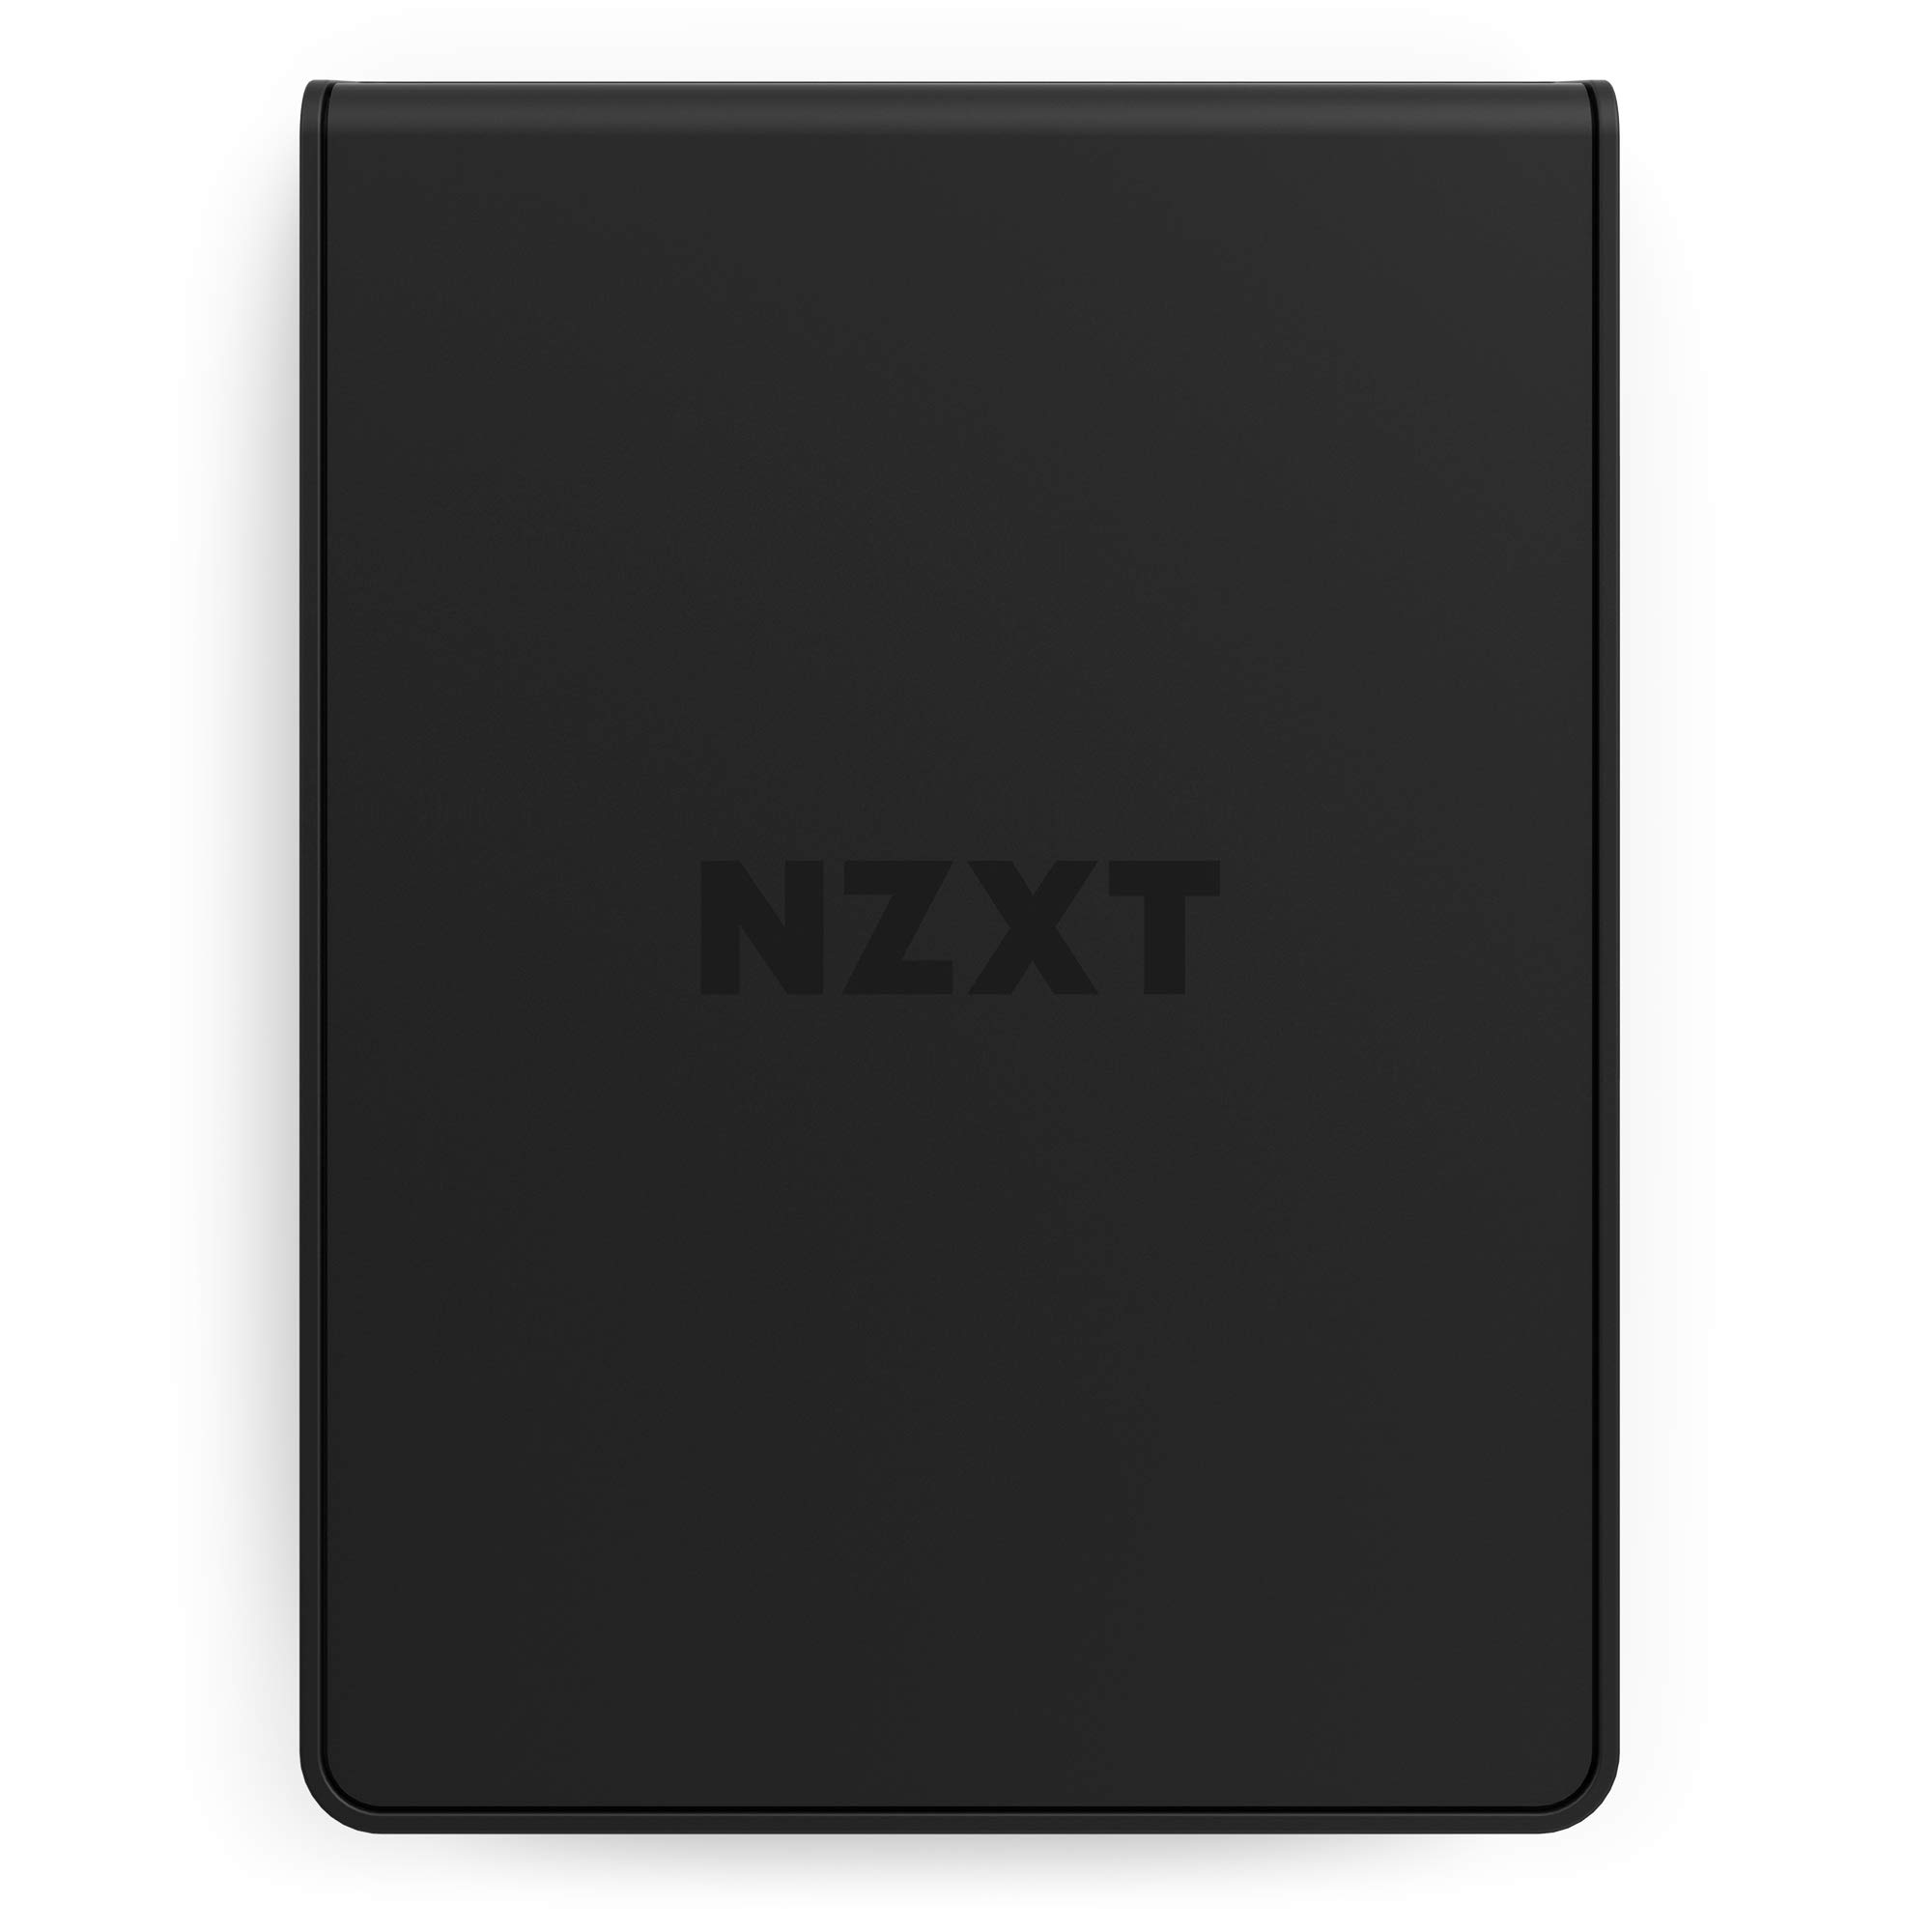 NZXT HUE2 RGB Lighting Kit - Four Magnetic LED Strips - Quad-Channel Support - Advanced PC Lighting System by NZXT (Image #4)